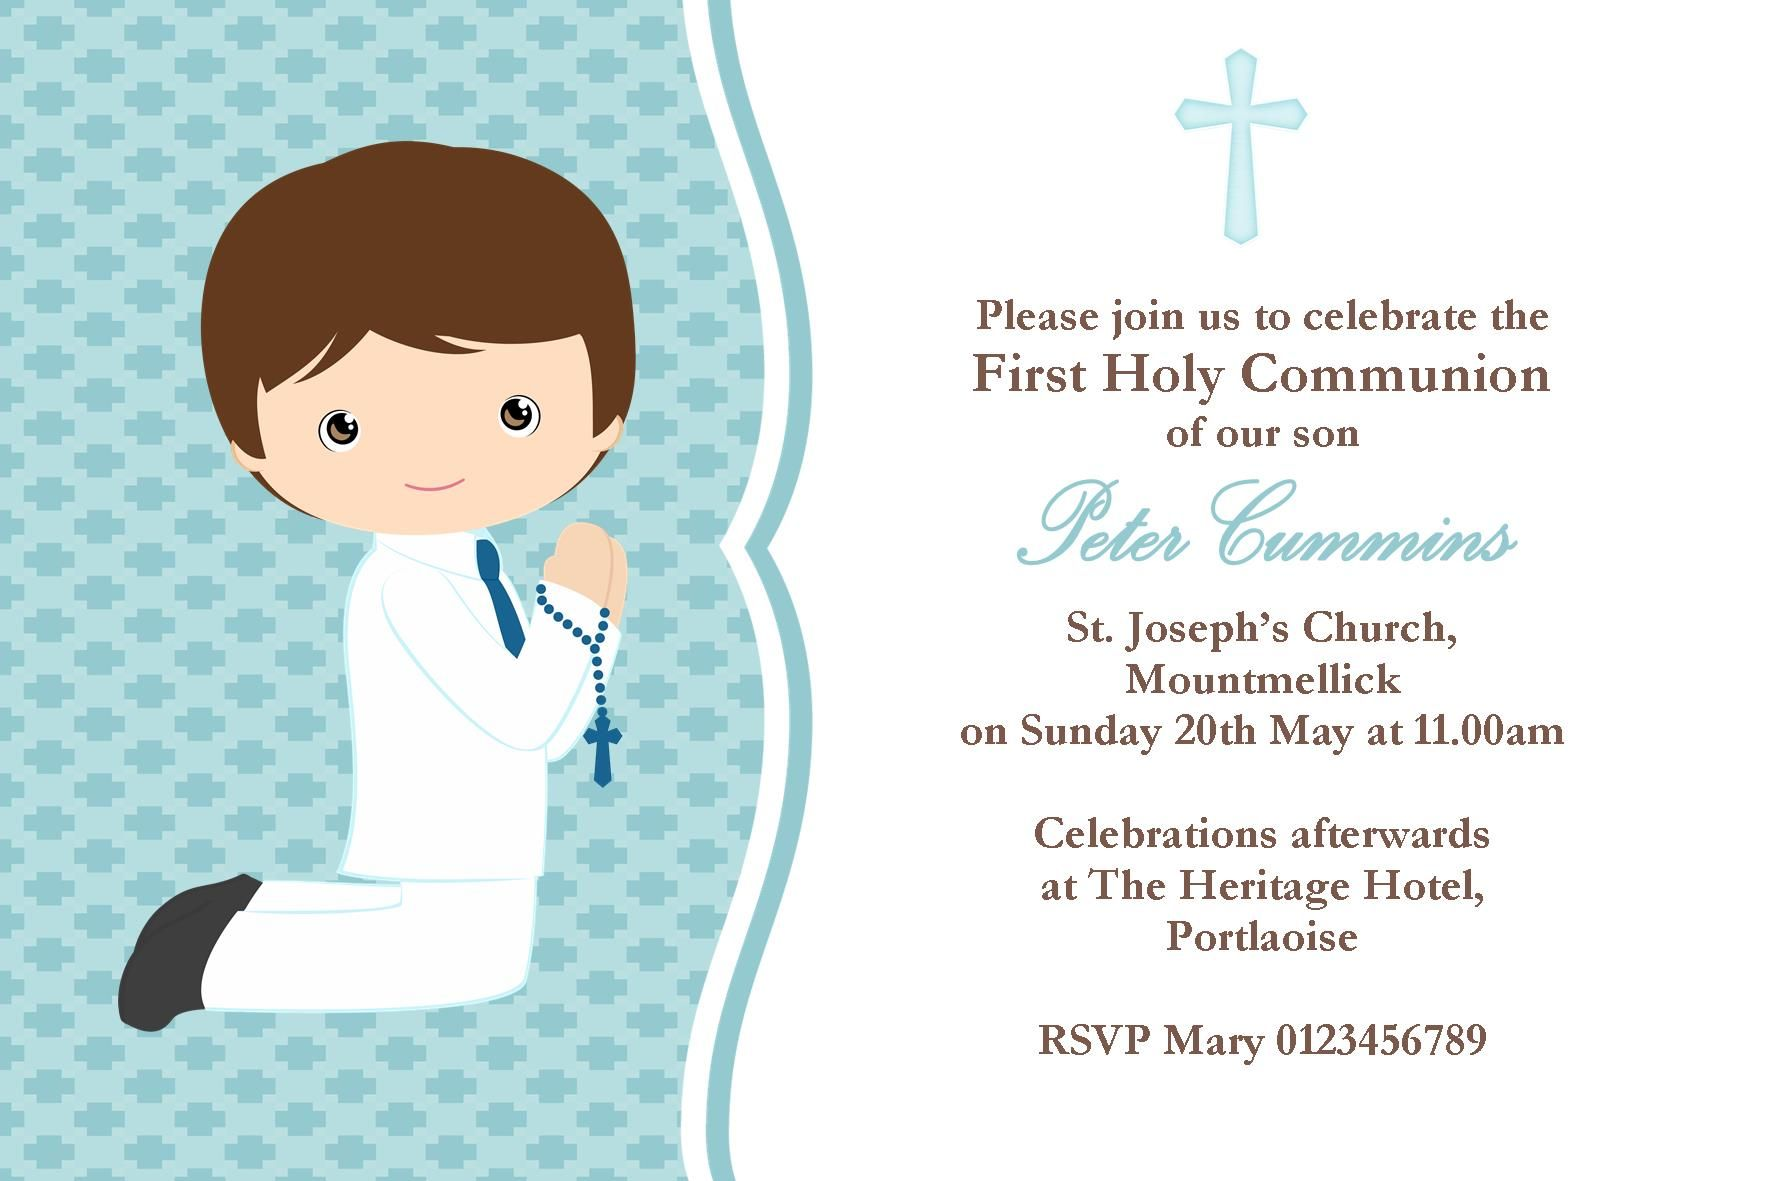 personalised-first-communion-invitations-boy-new-design-5-2290-p ...